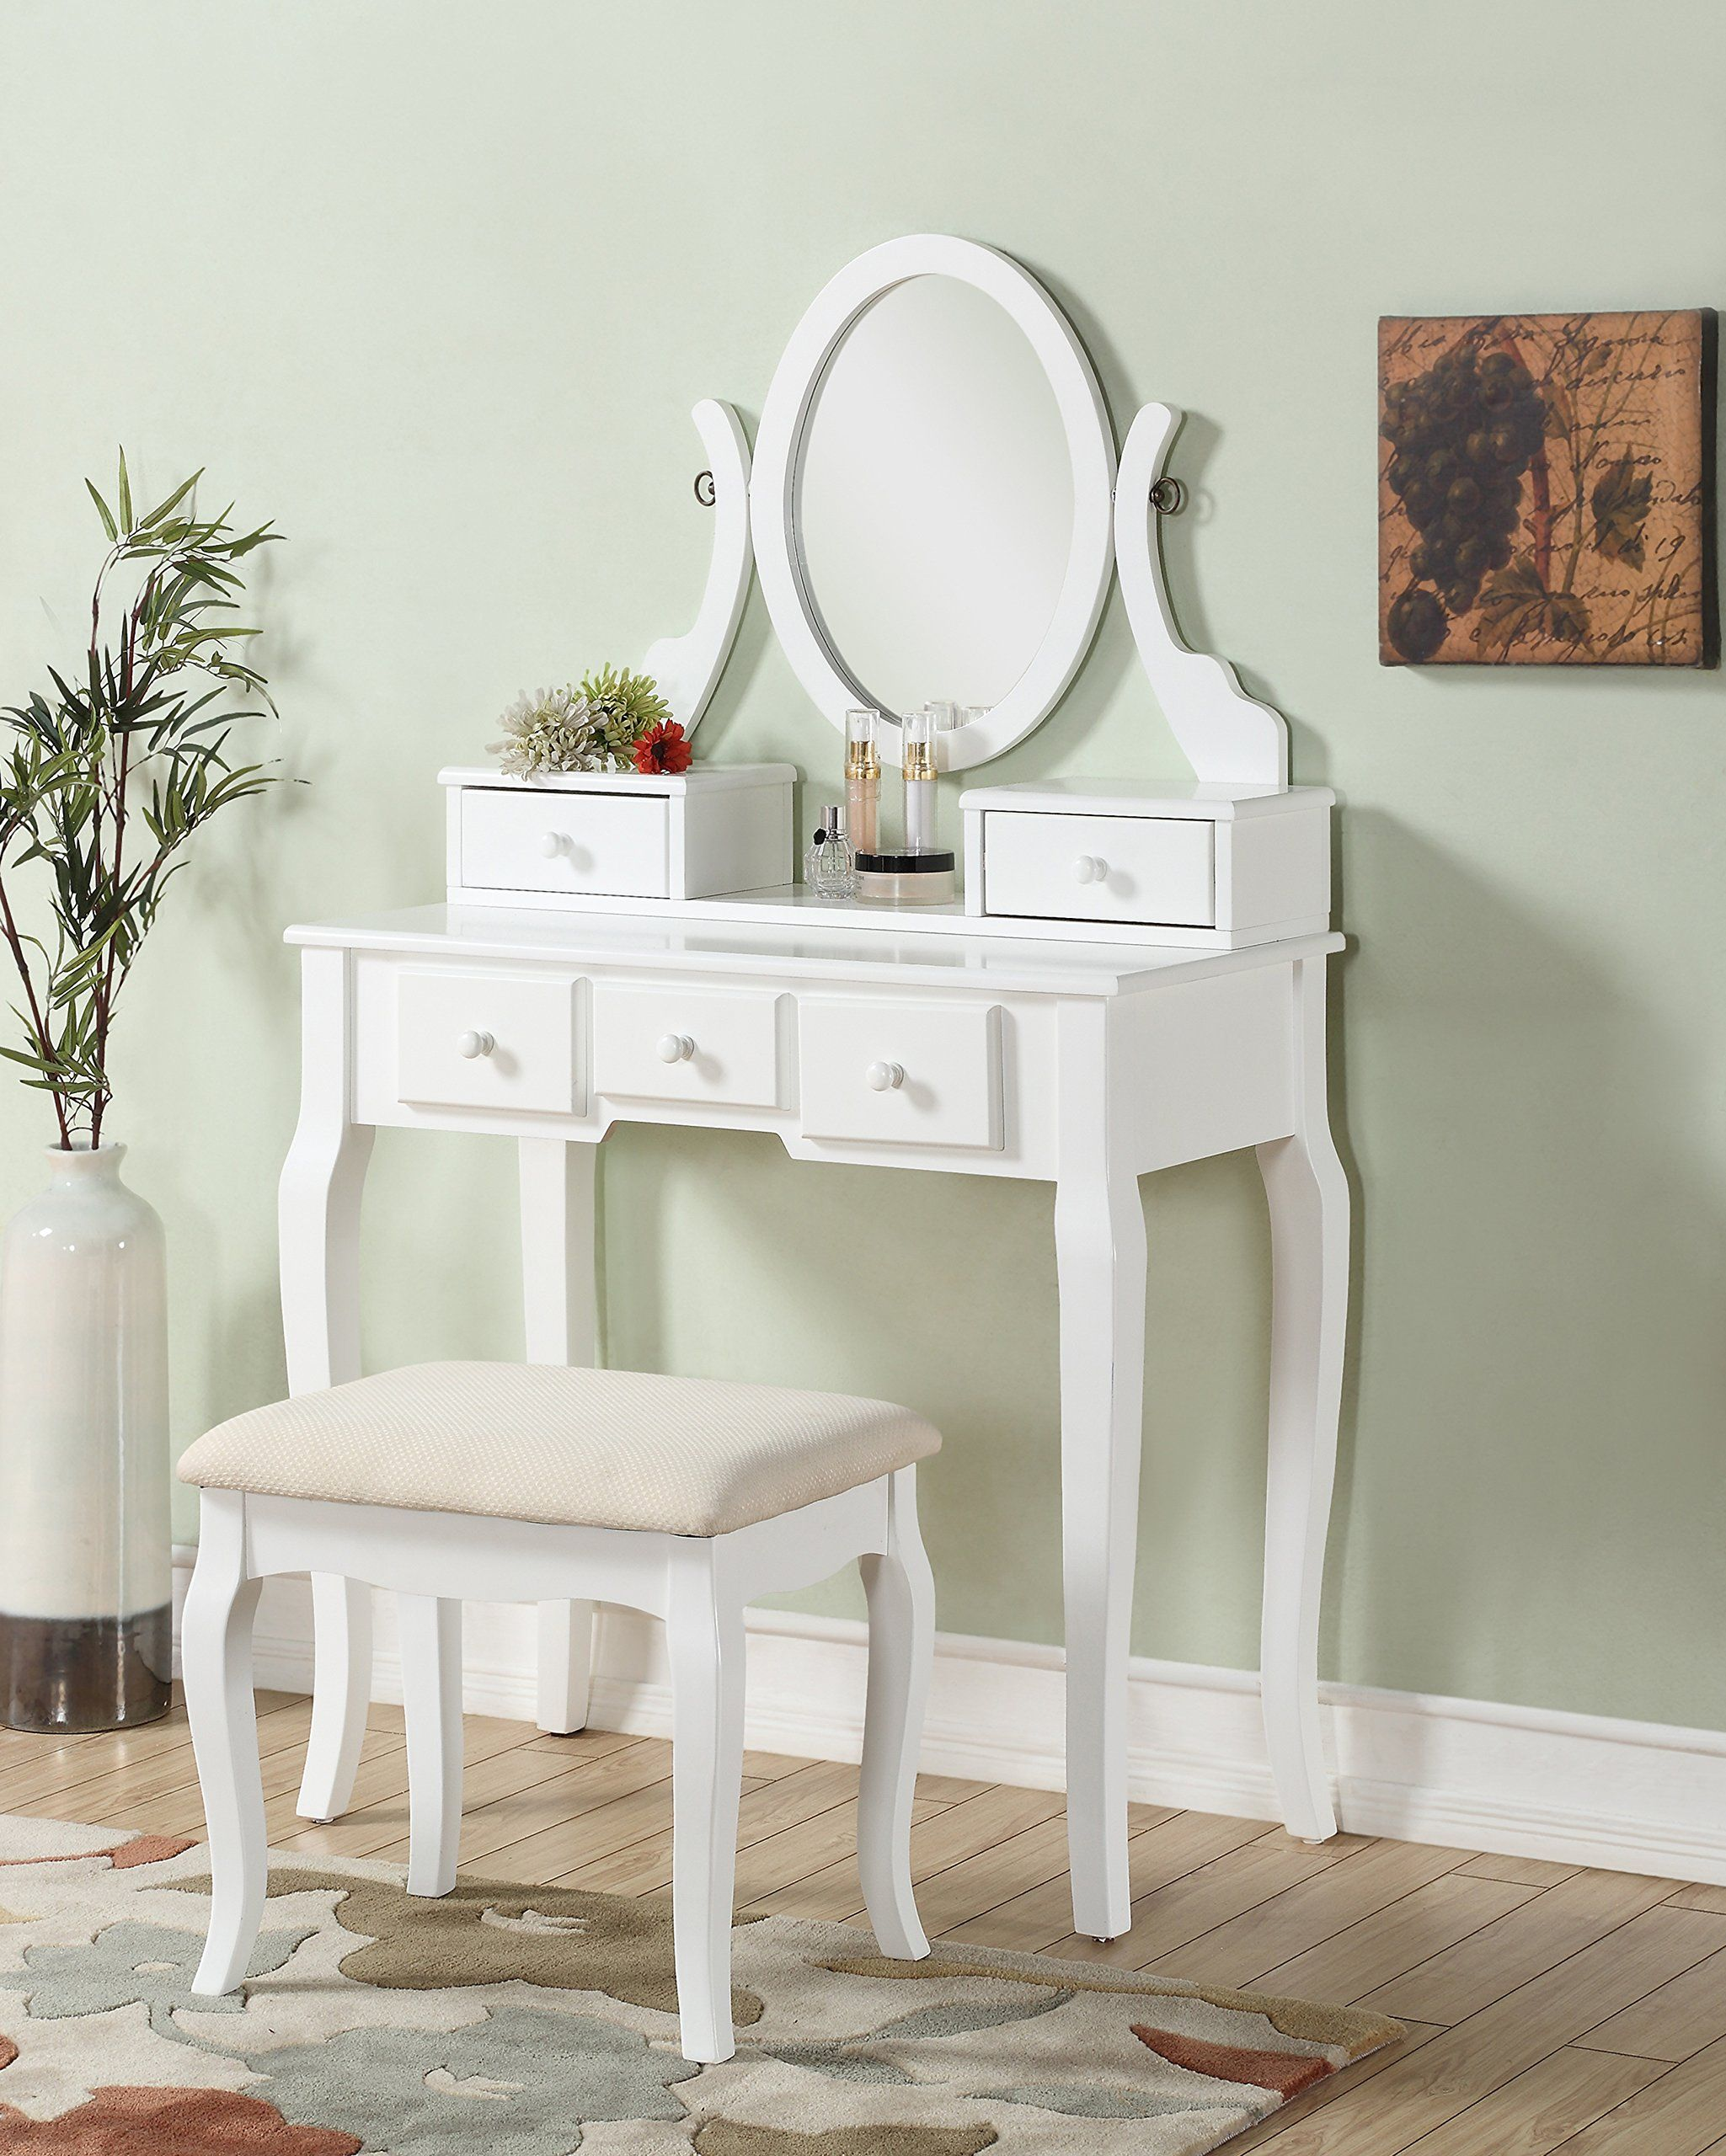 Roundhill furniture ashley wood makeup vanity table and stool set